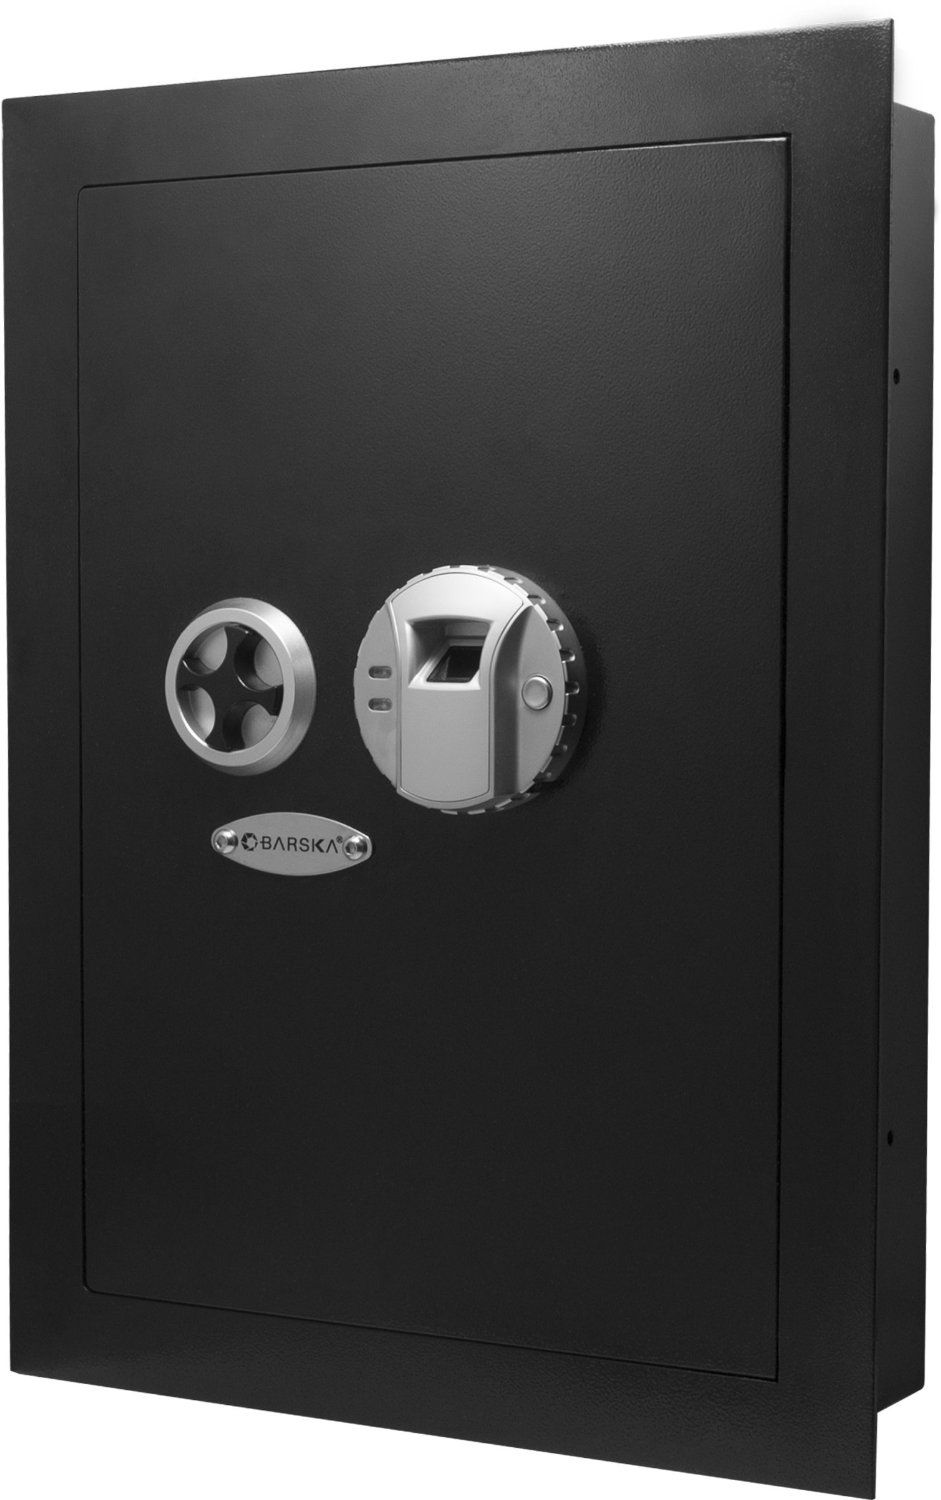 Top 5 best in wall gun safes 2016 hidden wall safe reviews gun safe in wall amipublicfo Image collections